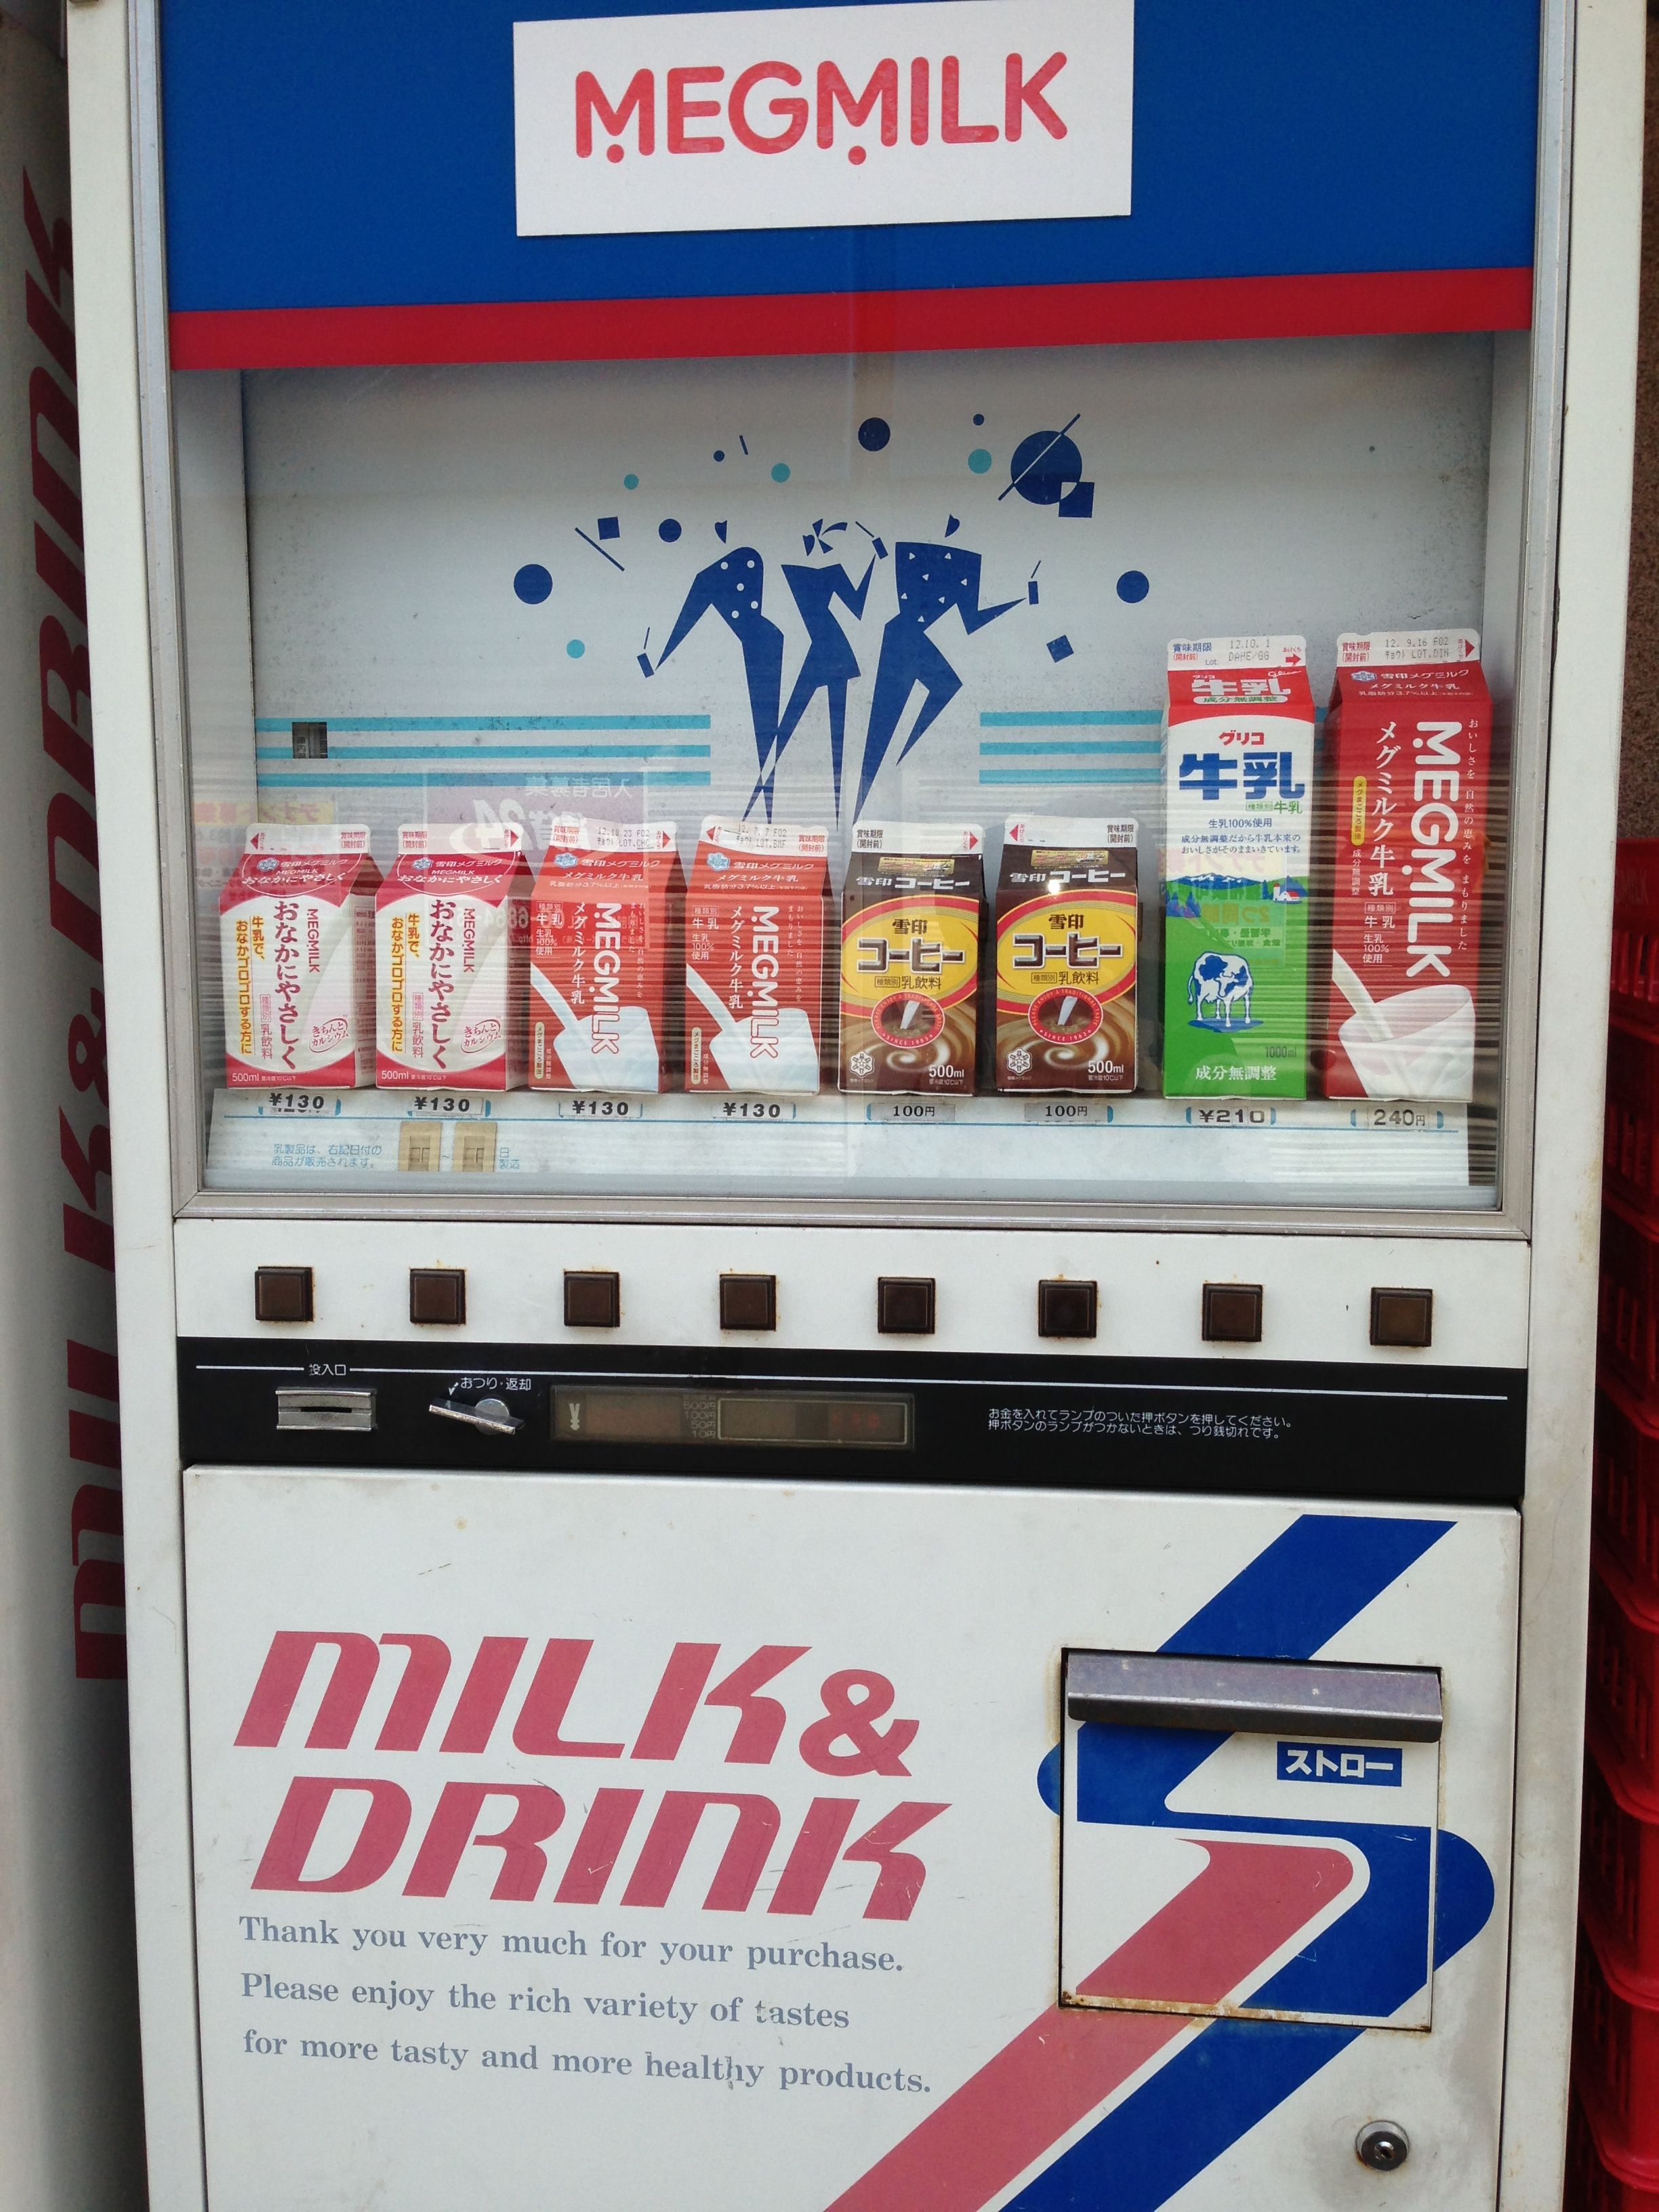 Milk vending machine in Japan!